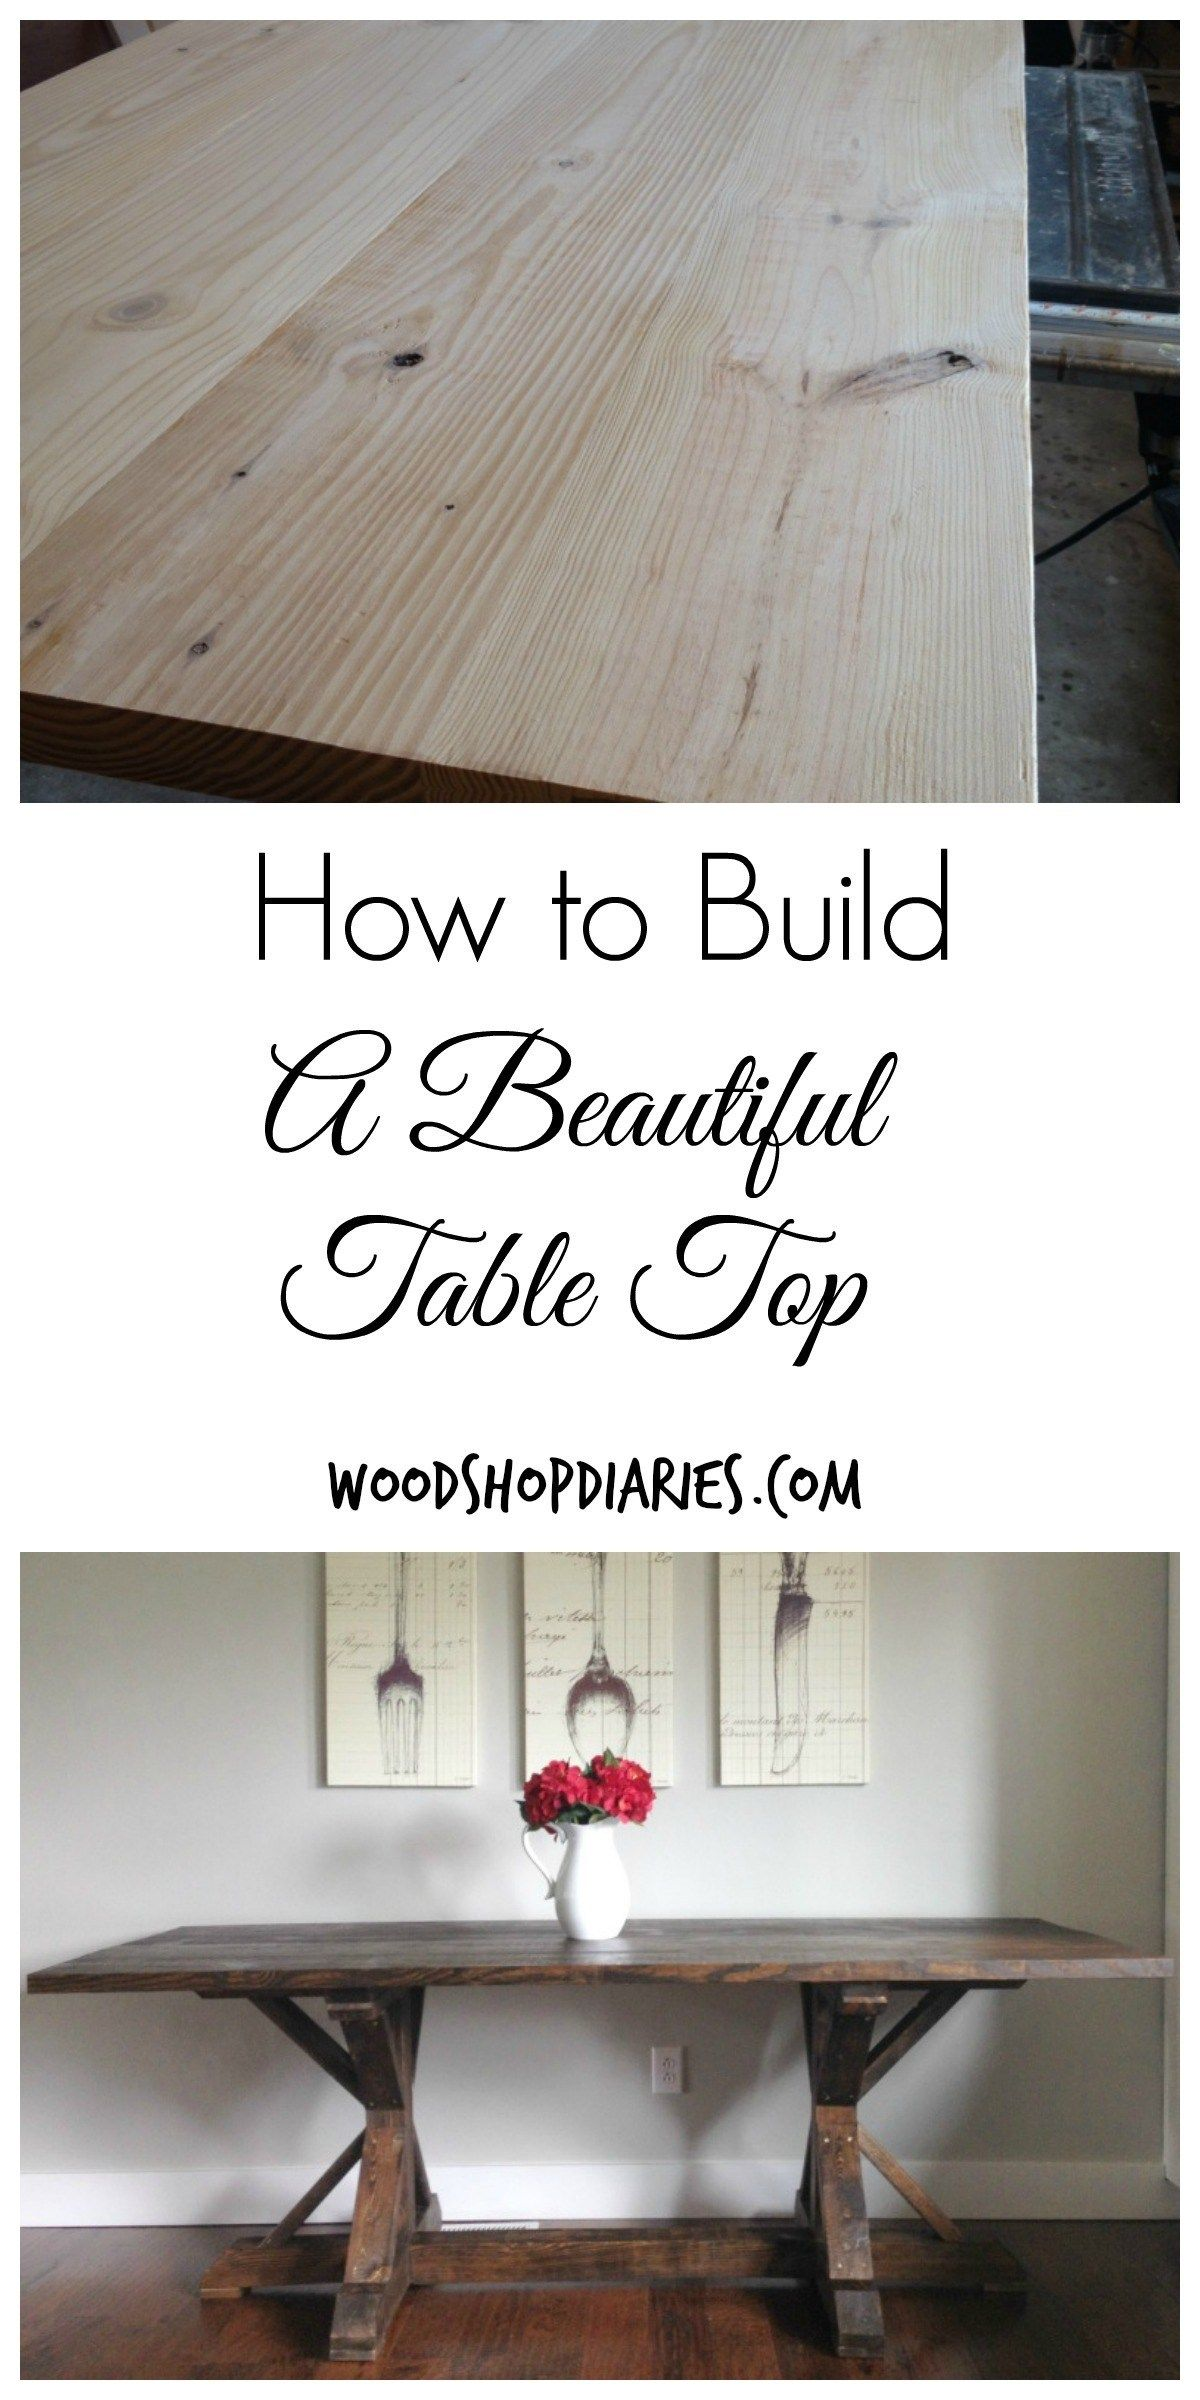 How To Build A Simple Diy Wooden Table Top The Simple Way Diy